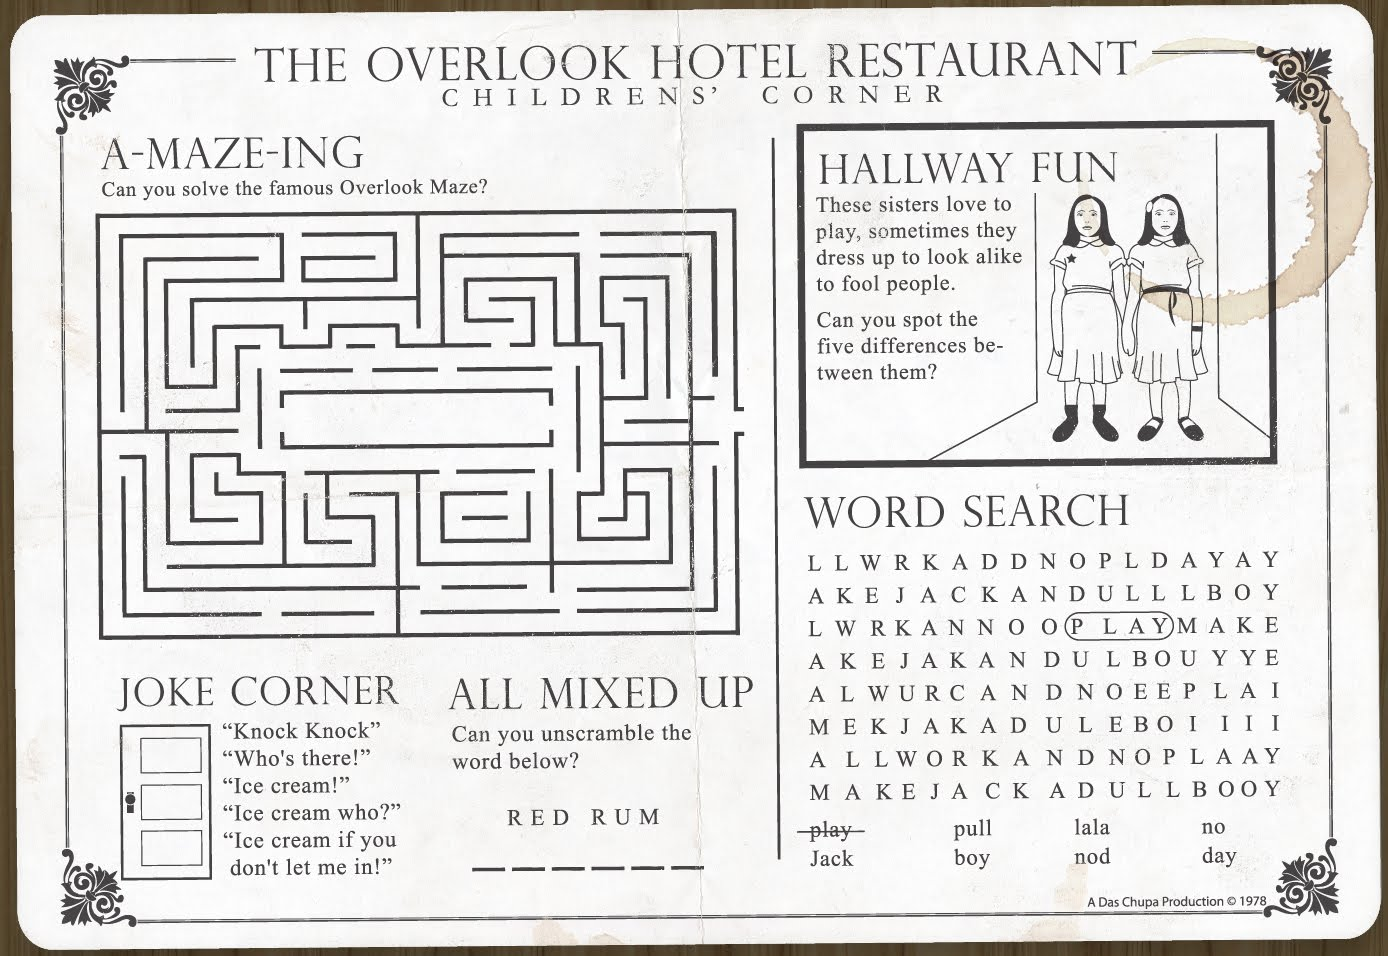 Zero Lives Overlook Restaurant Children S Menu